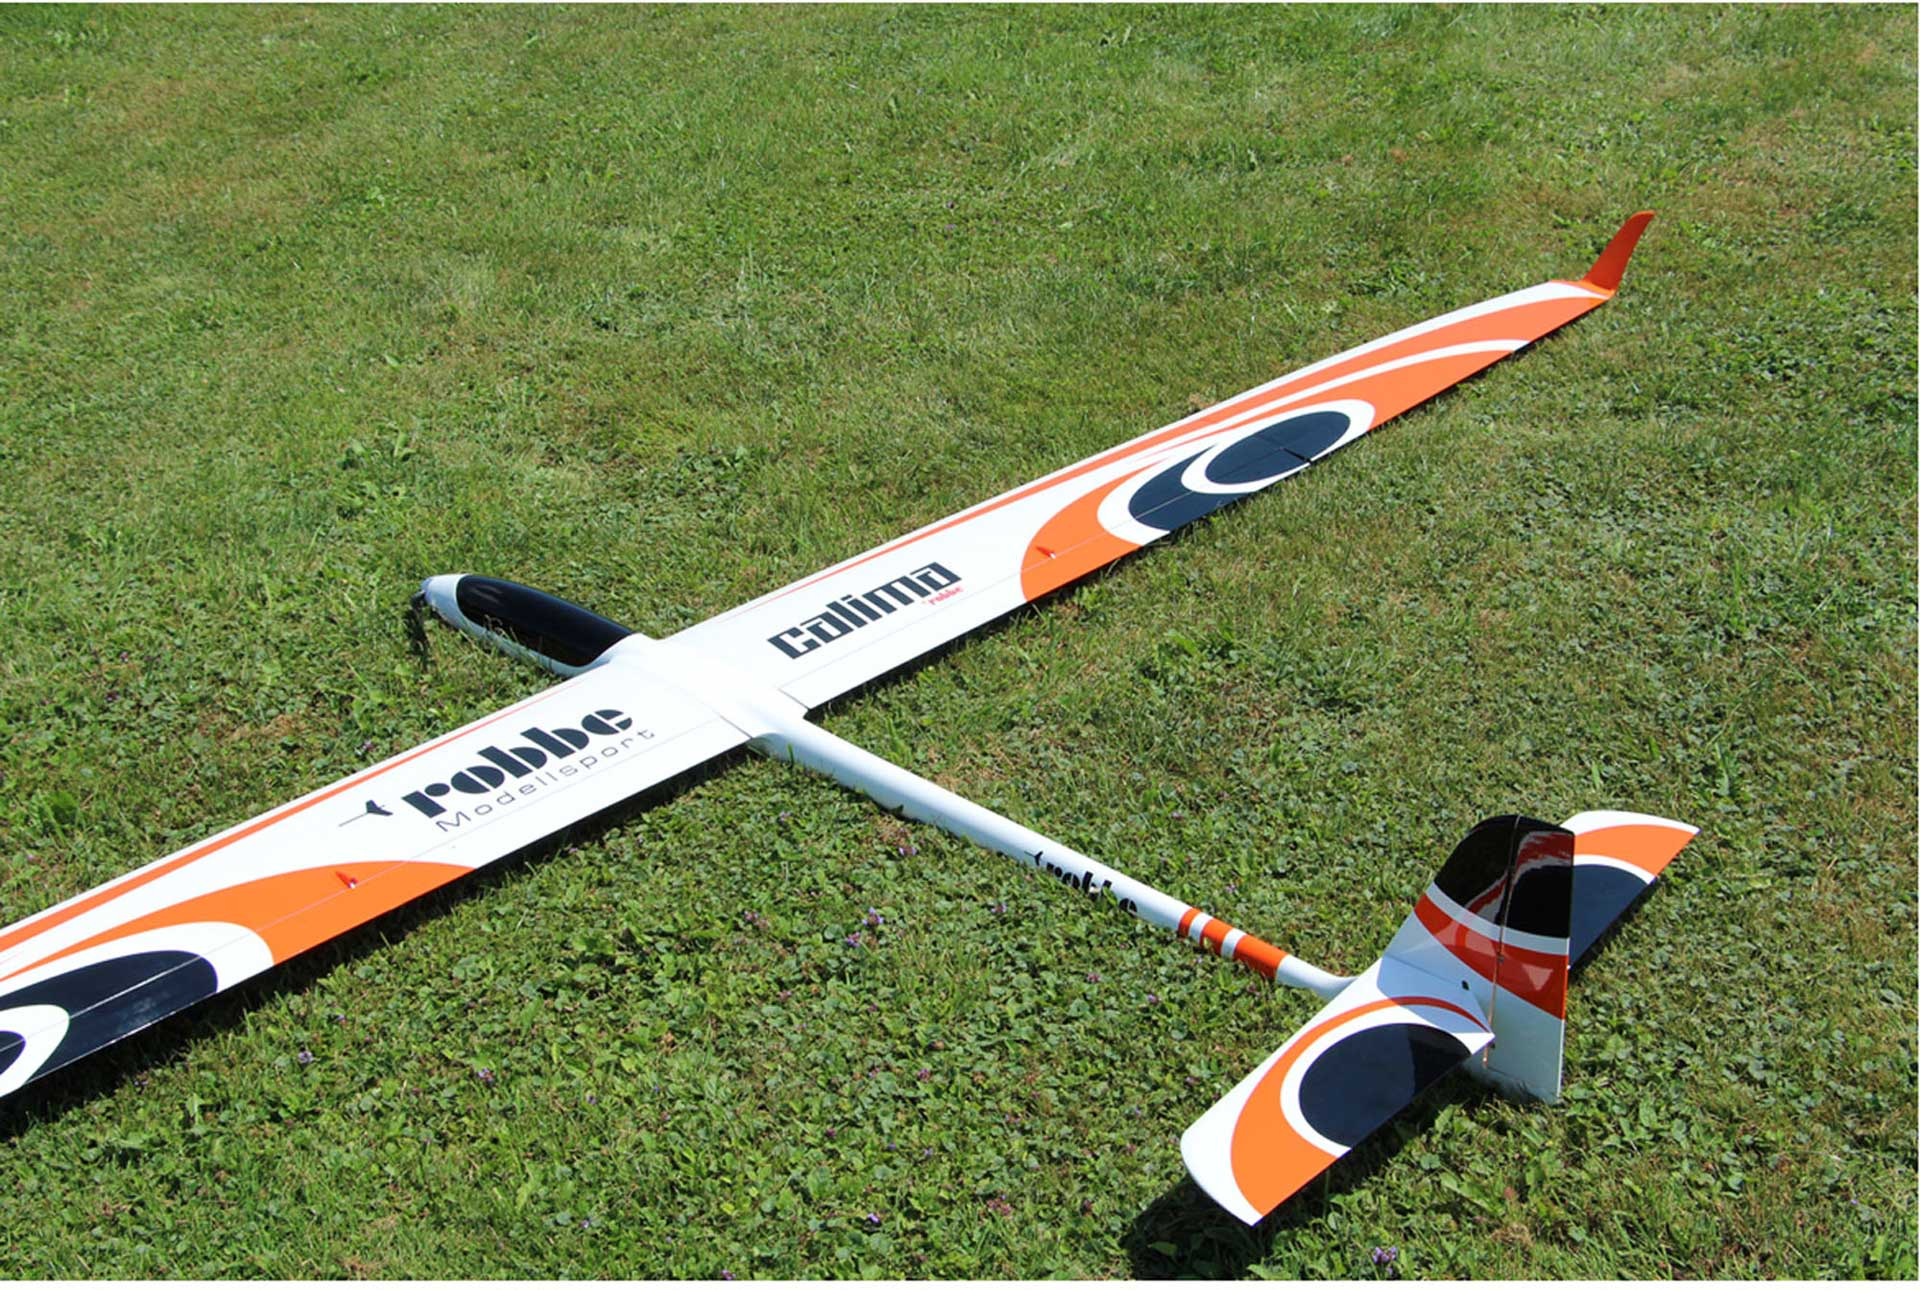 ROBBE CALIMA PNP HIGH PERFORMANCE GLIDER WITH 4-FLAP WINGS AND INTEGRATED SERVOS